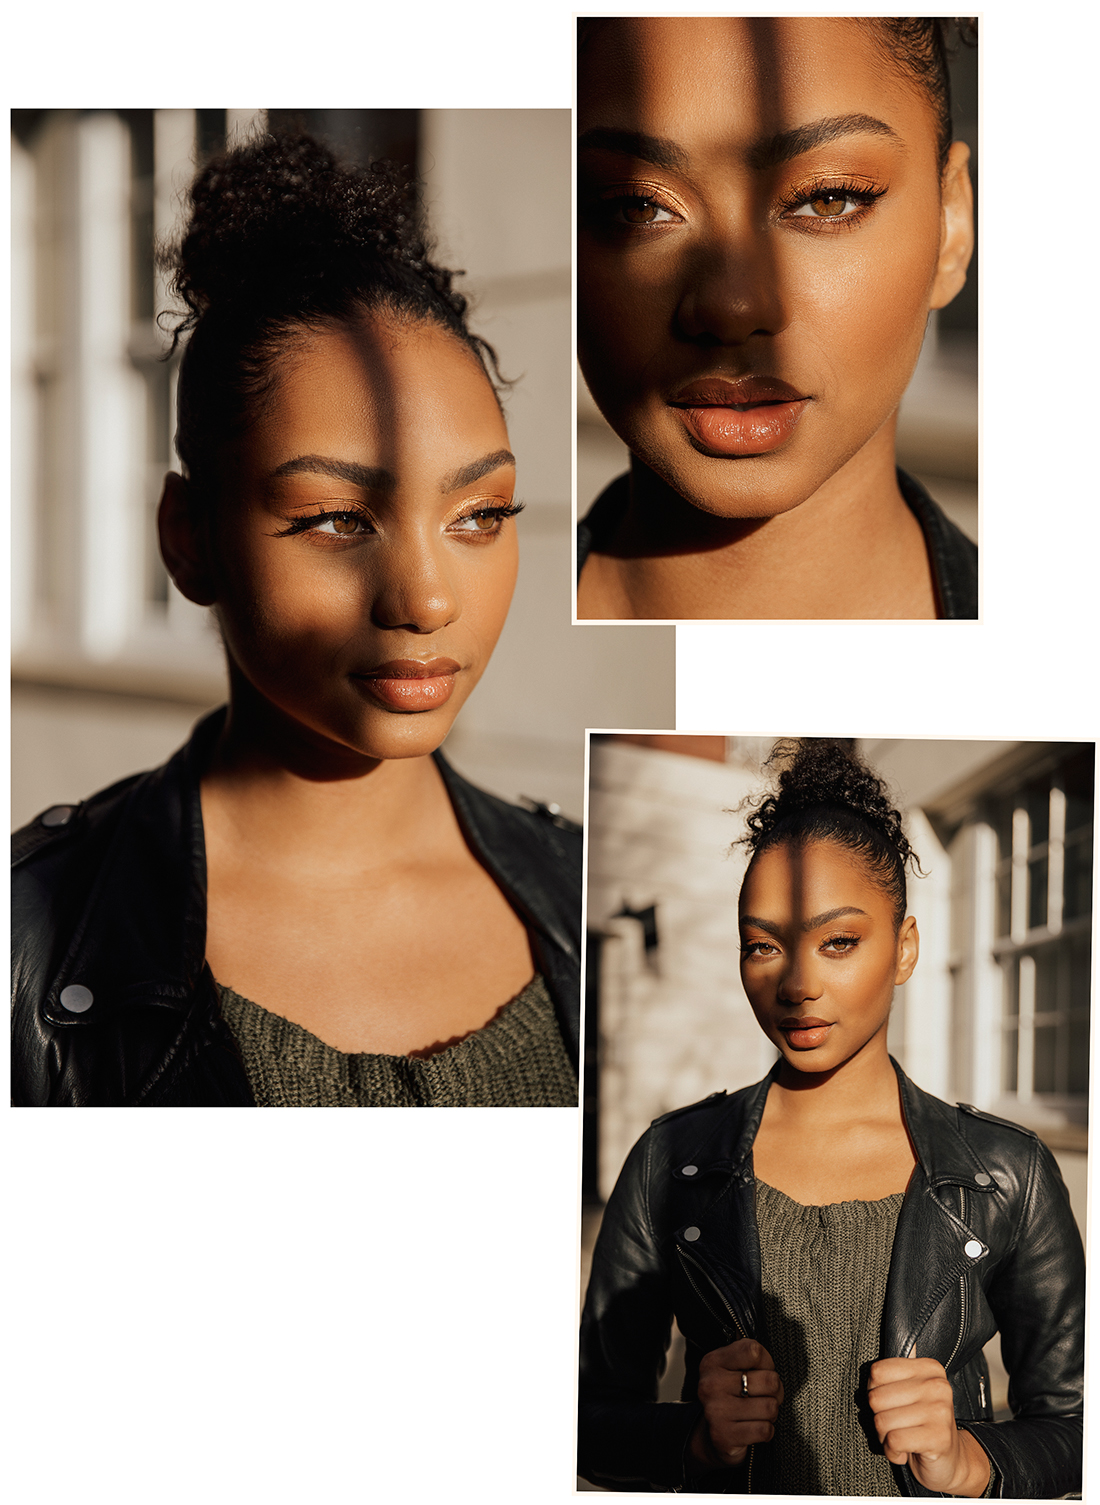 Model portrait shoot using shadows with Maleika @ Profile by London photograher Ailera Stone